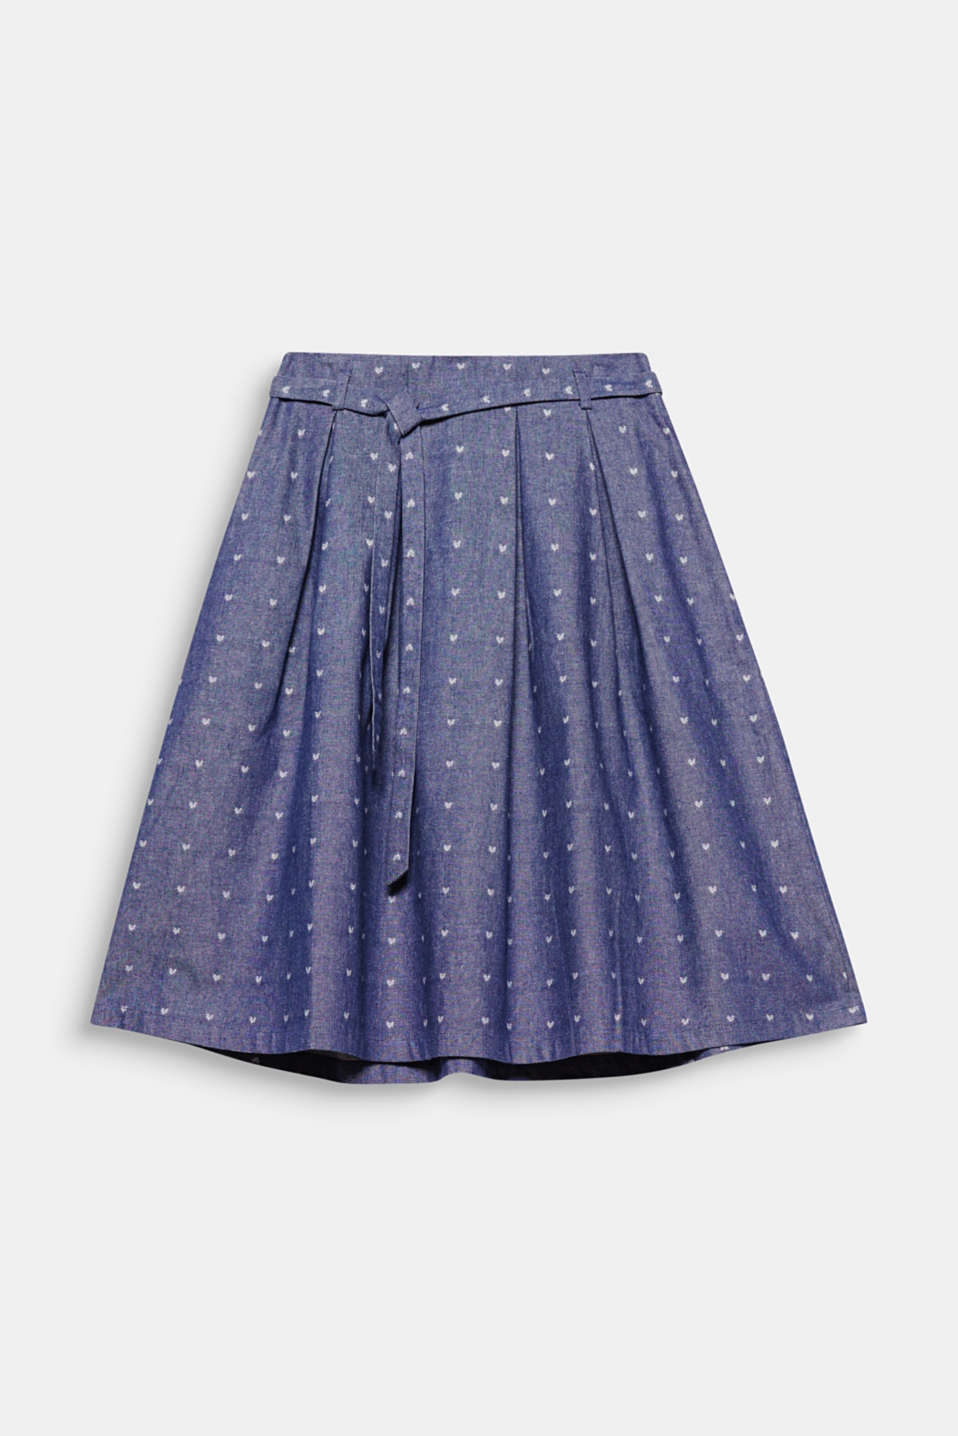 Denim with a playful touch: wide flared skirt with interwoven hearts!